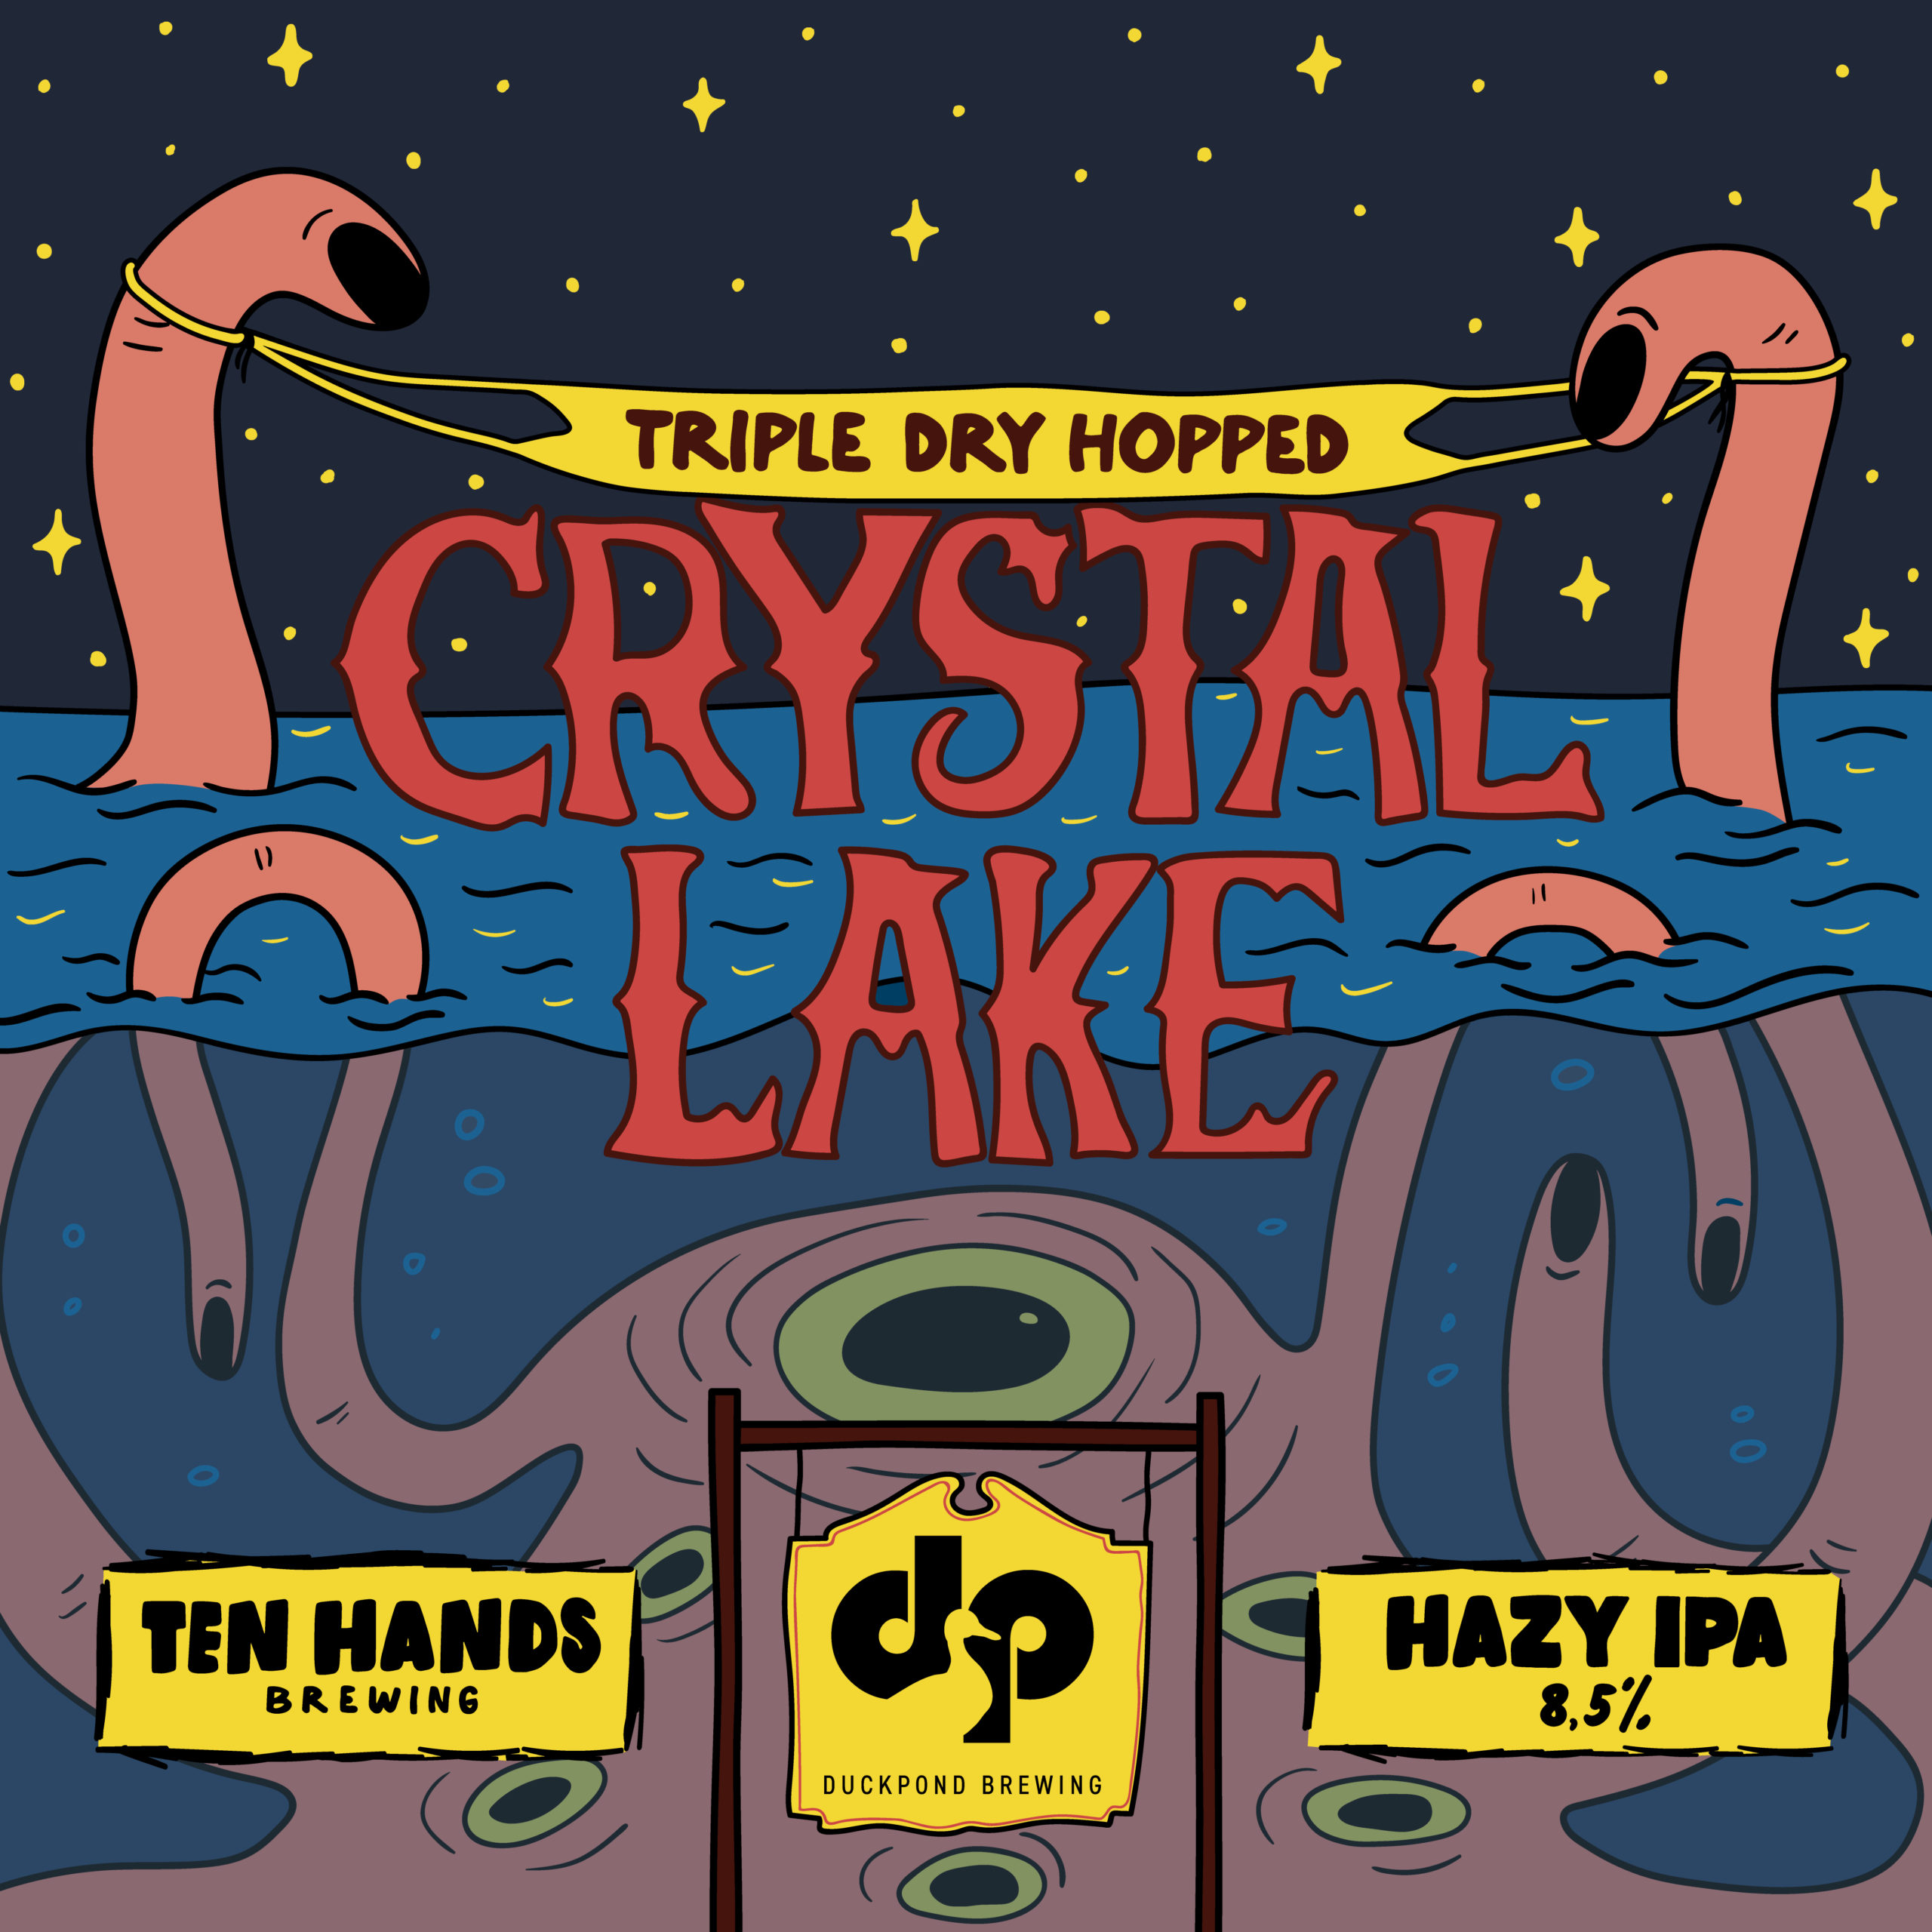 Triple Dry Hopped Crystal Lake